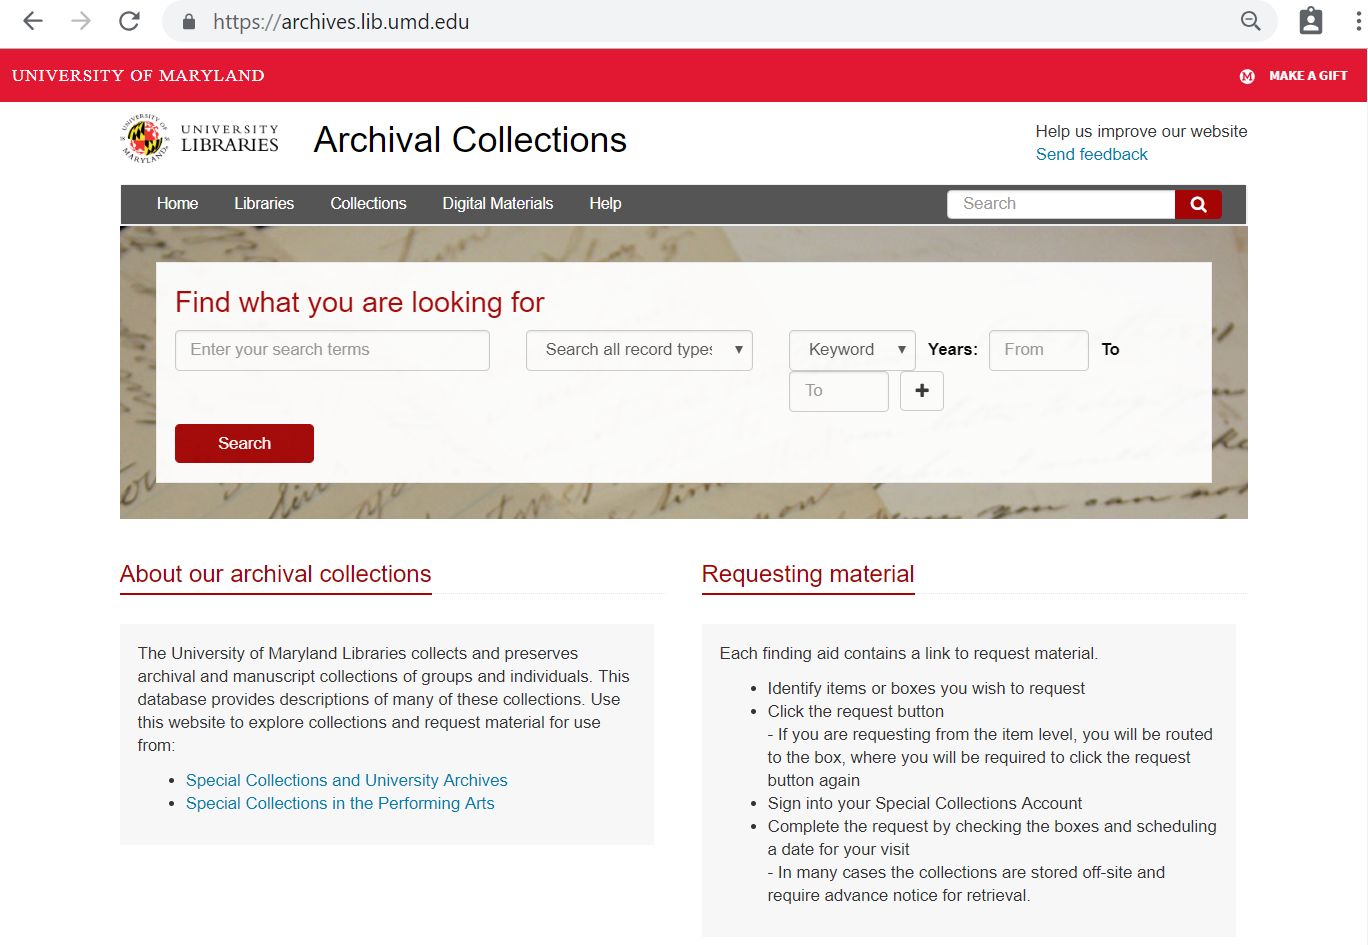 Archival Collections home page